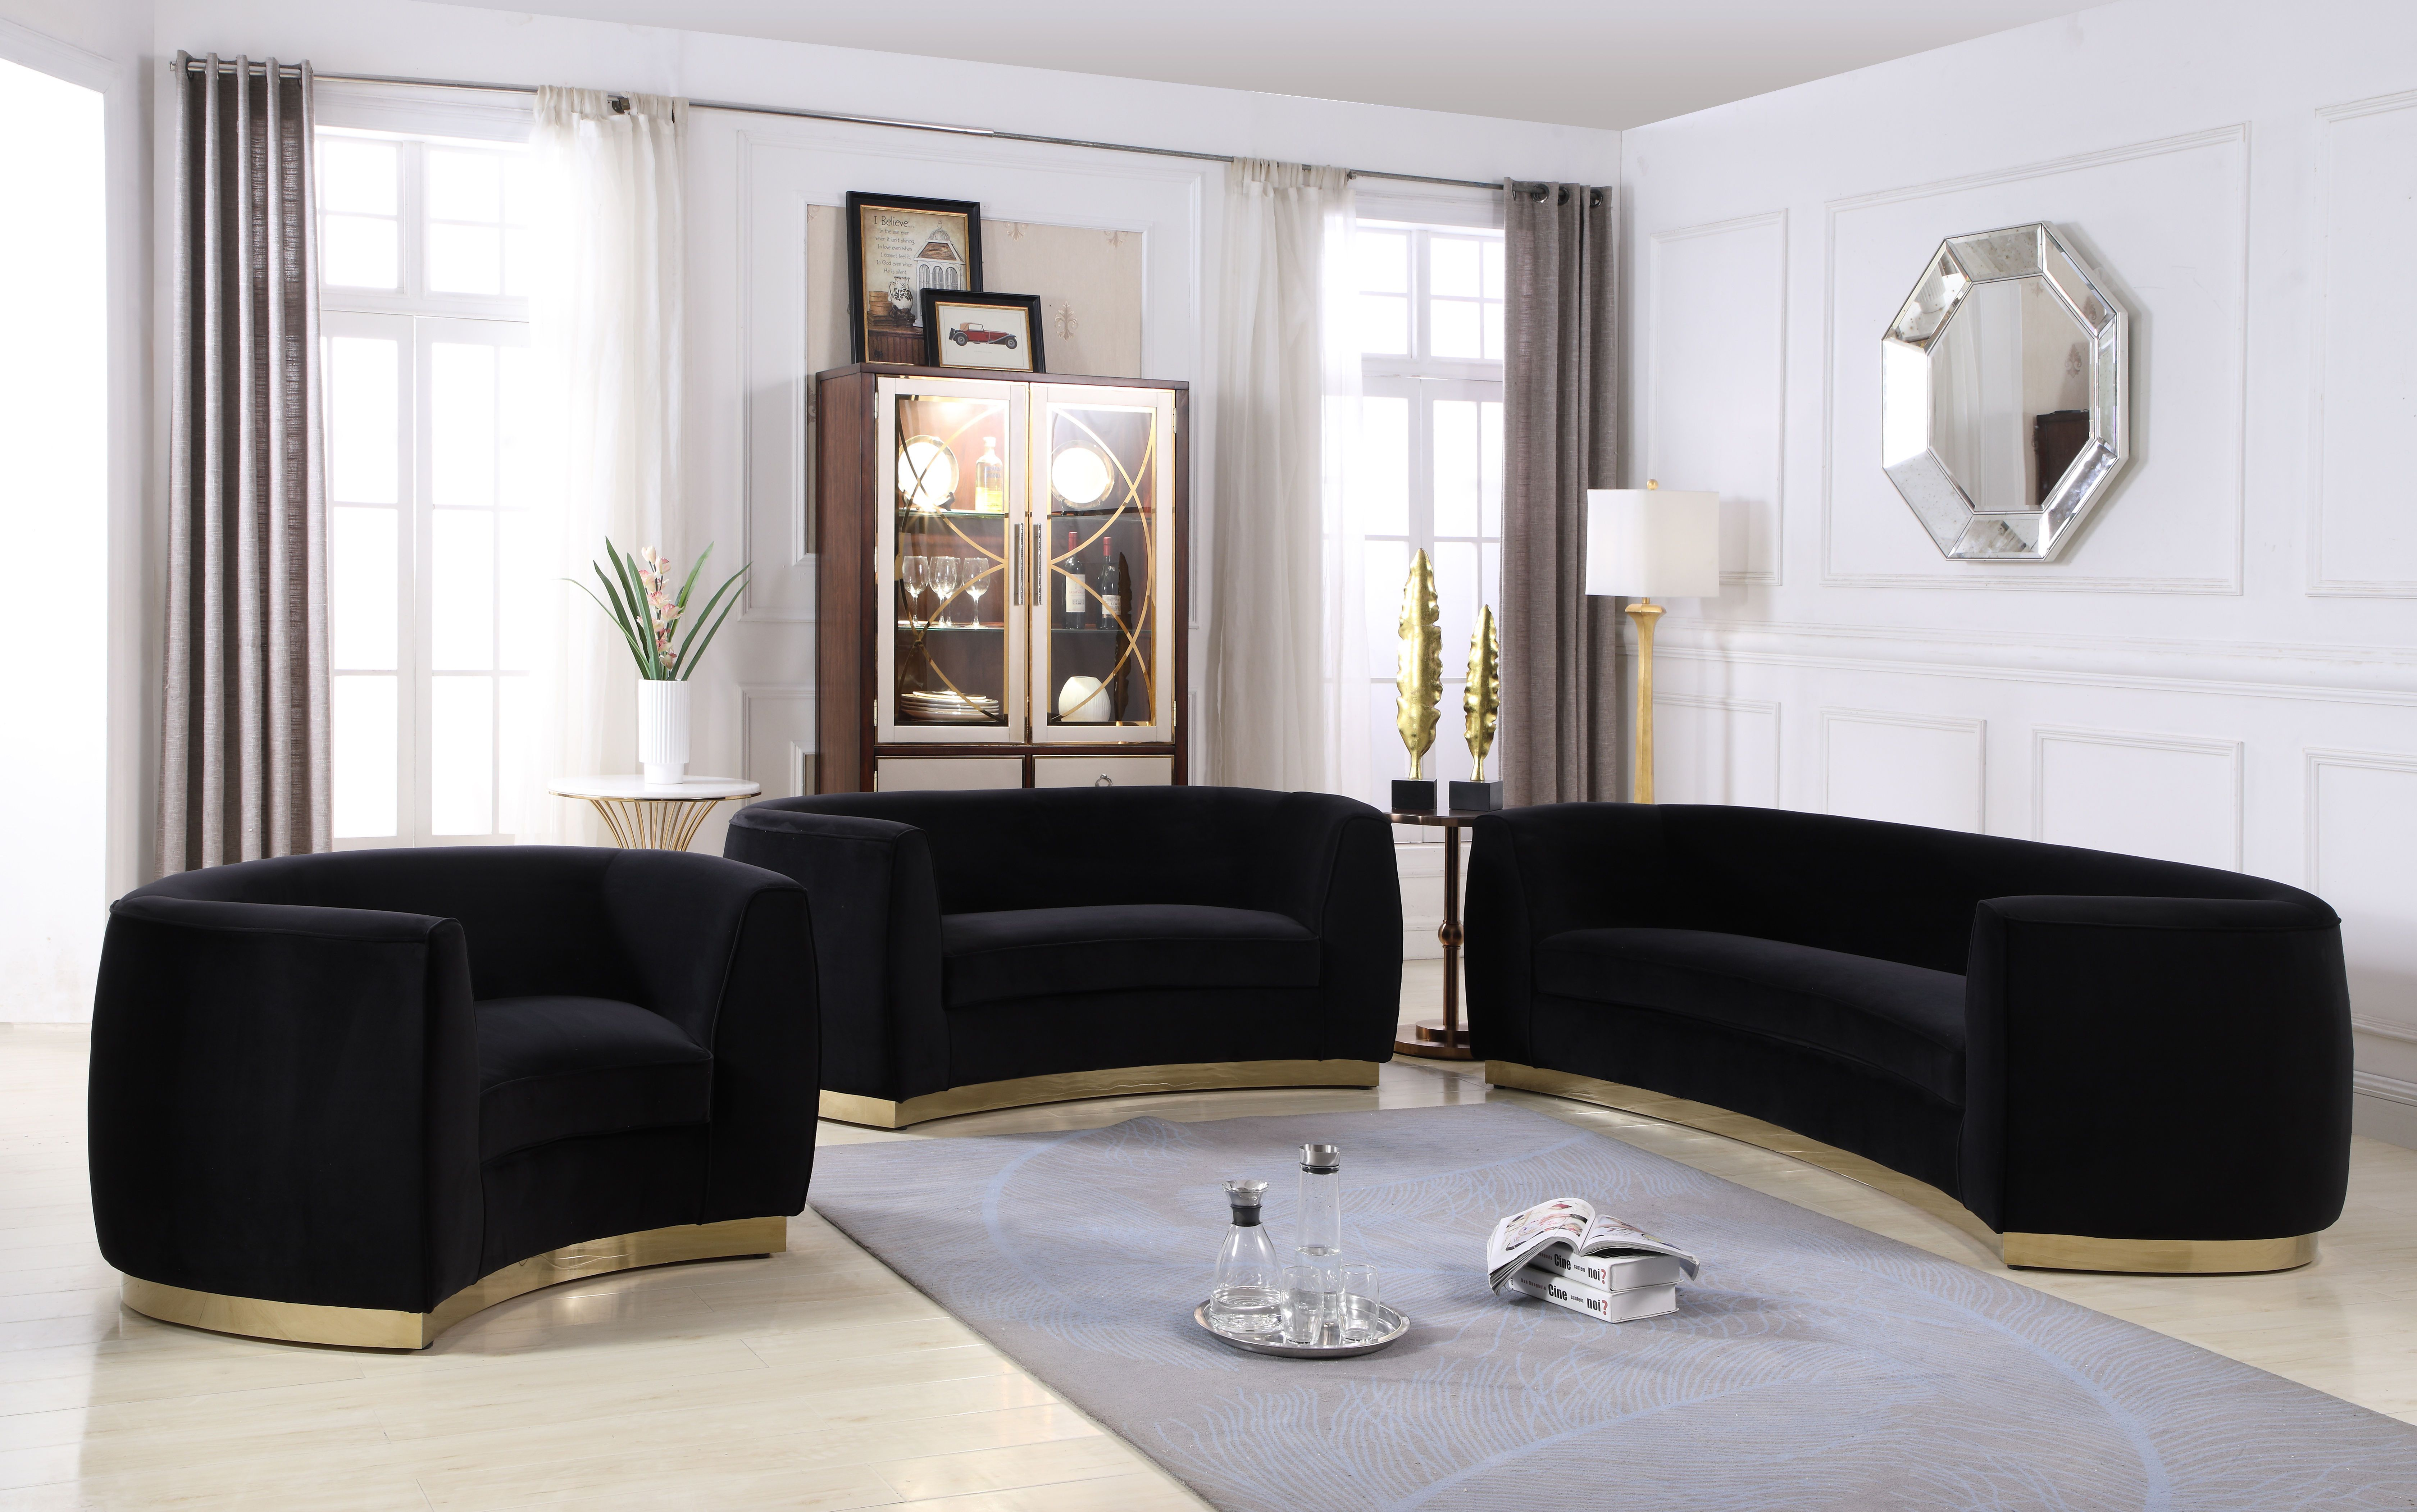 10 Awesome Ideas How To Improve Living Room Set For Cheap